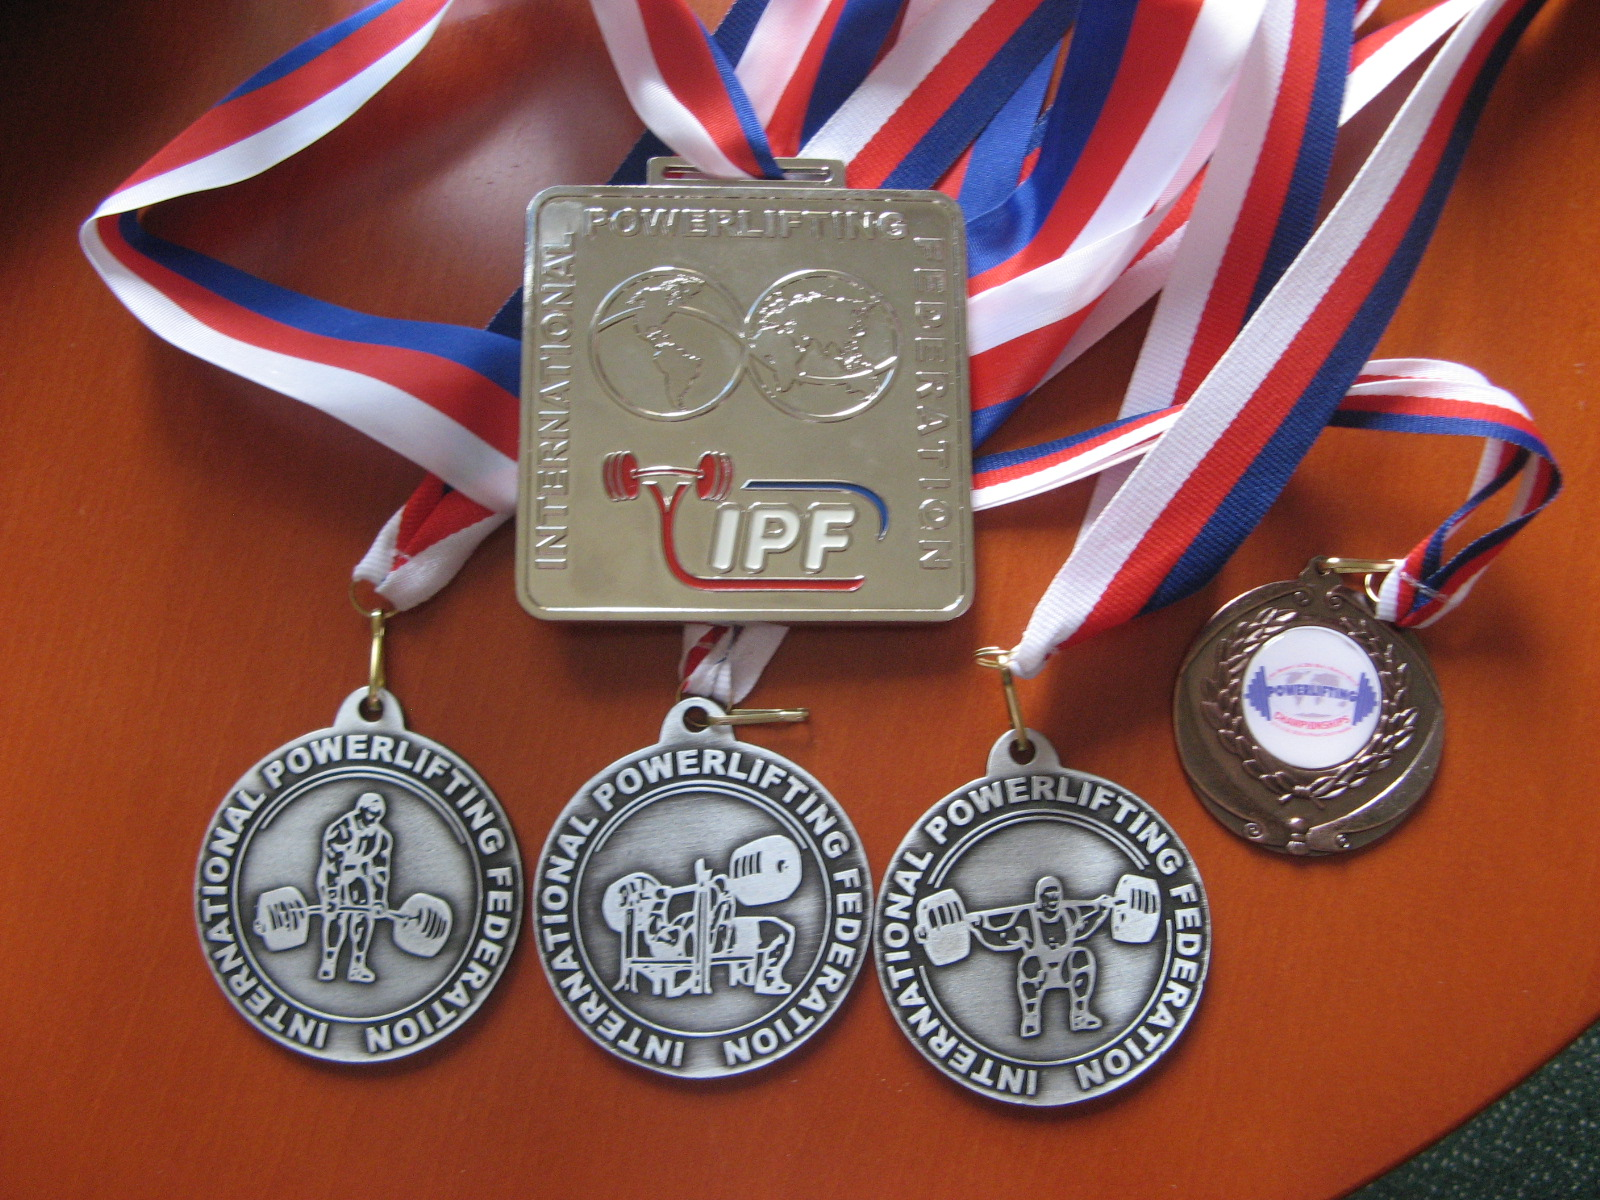 2010 IPF World Masters Silver medals